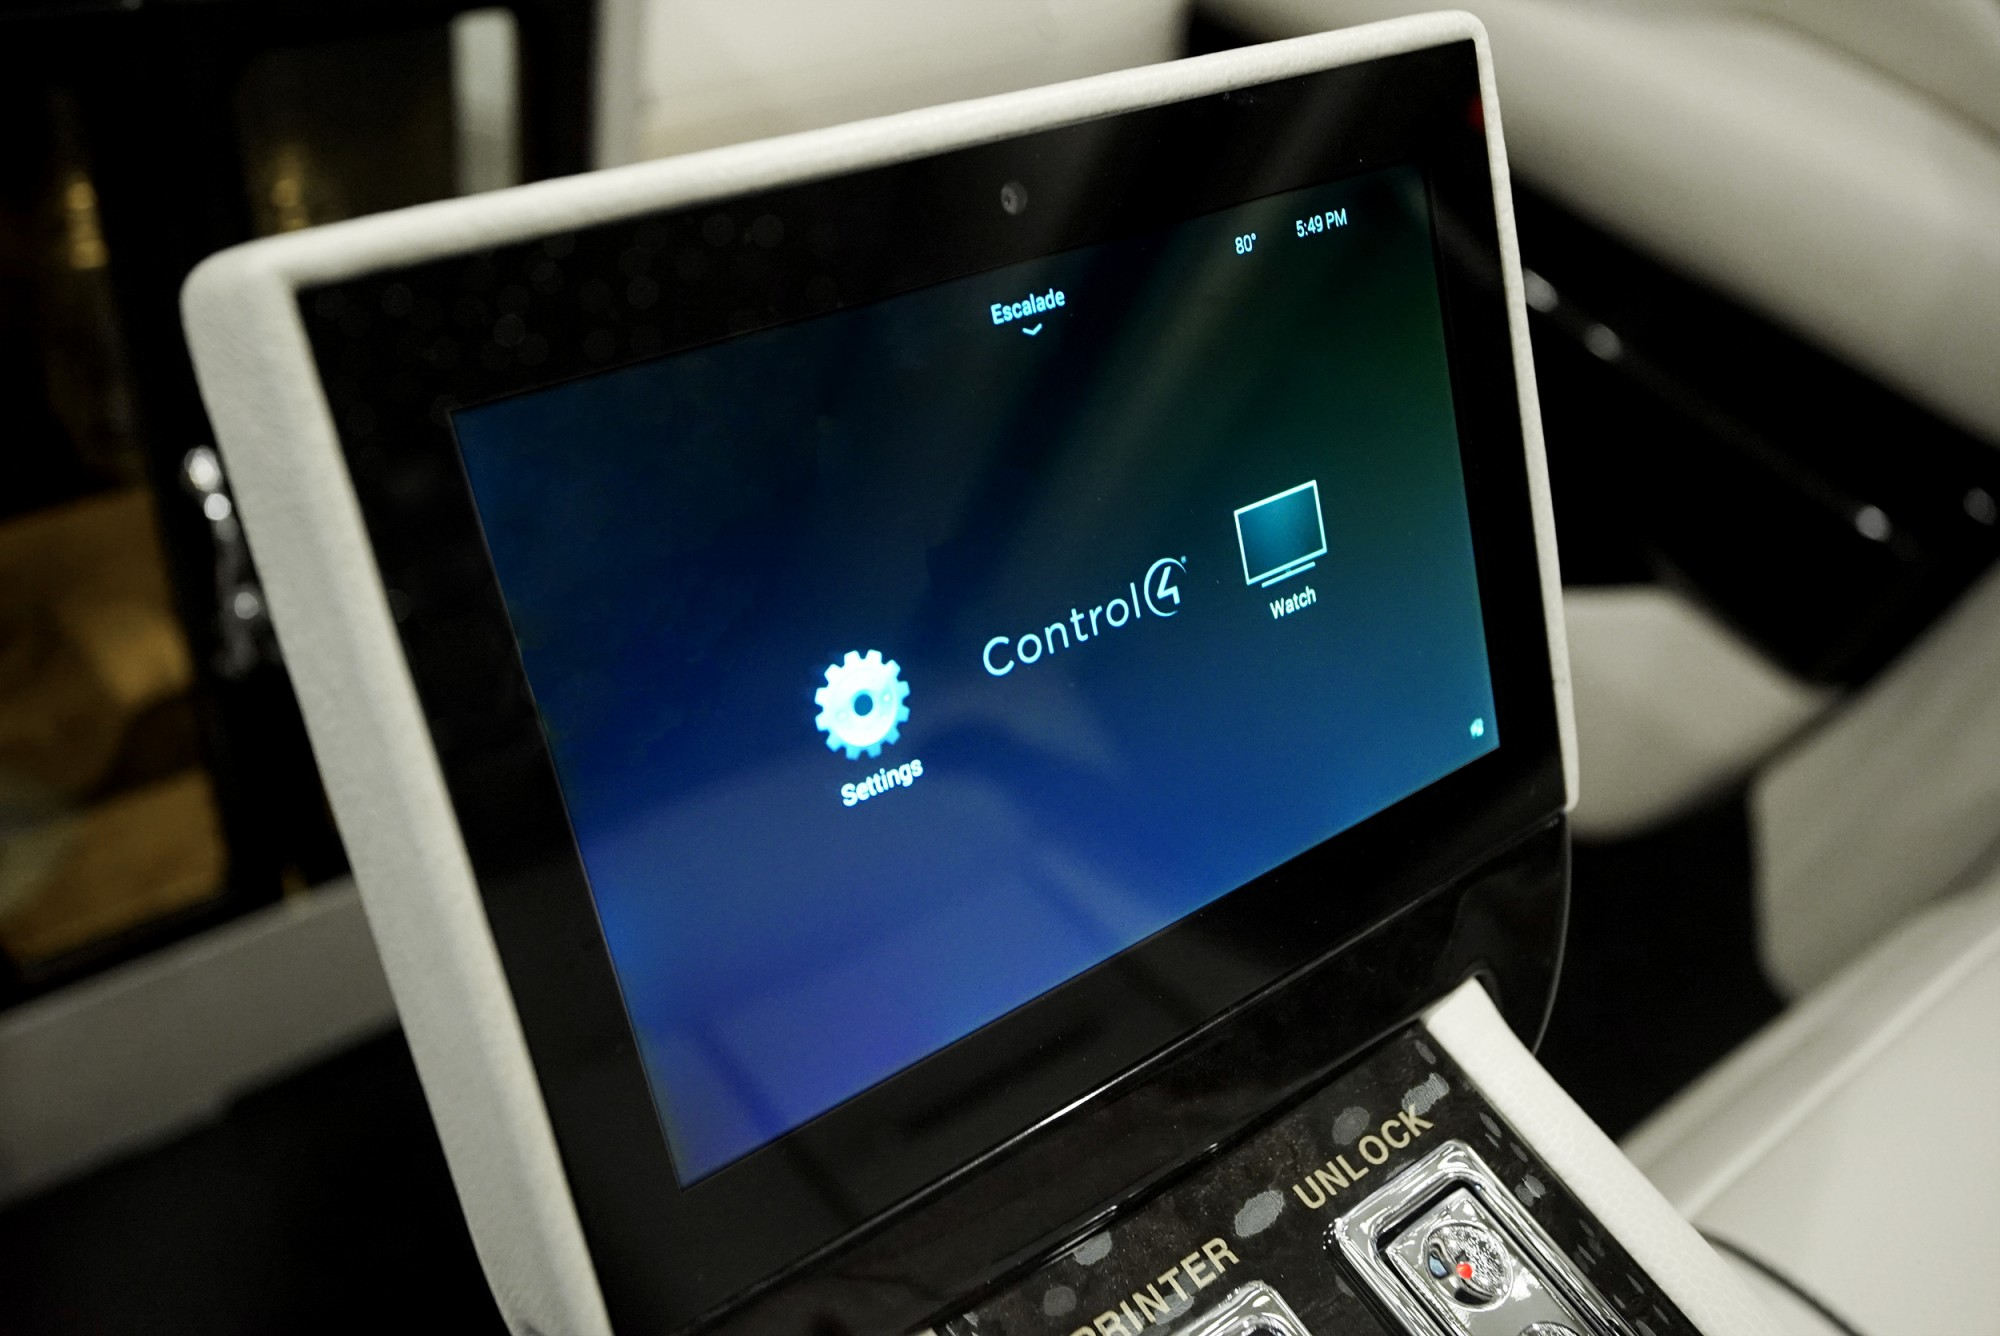 touch screen control panel management system